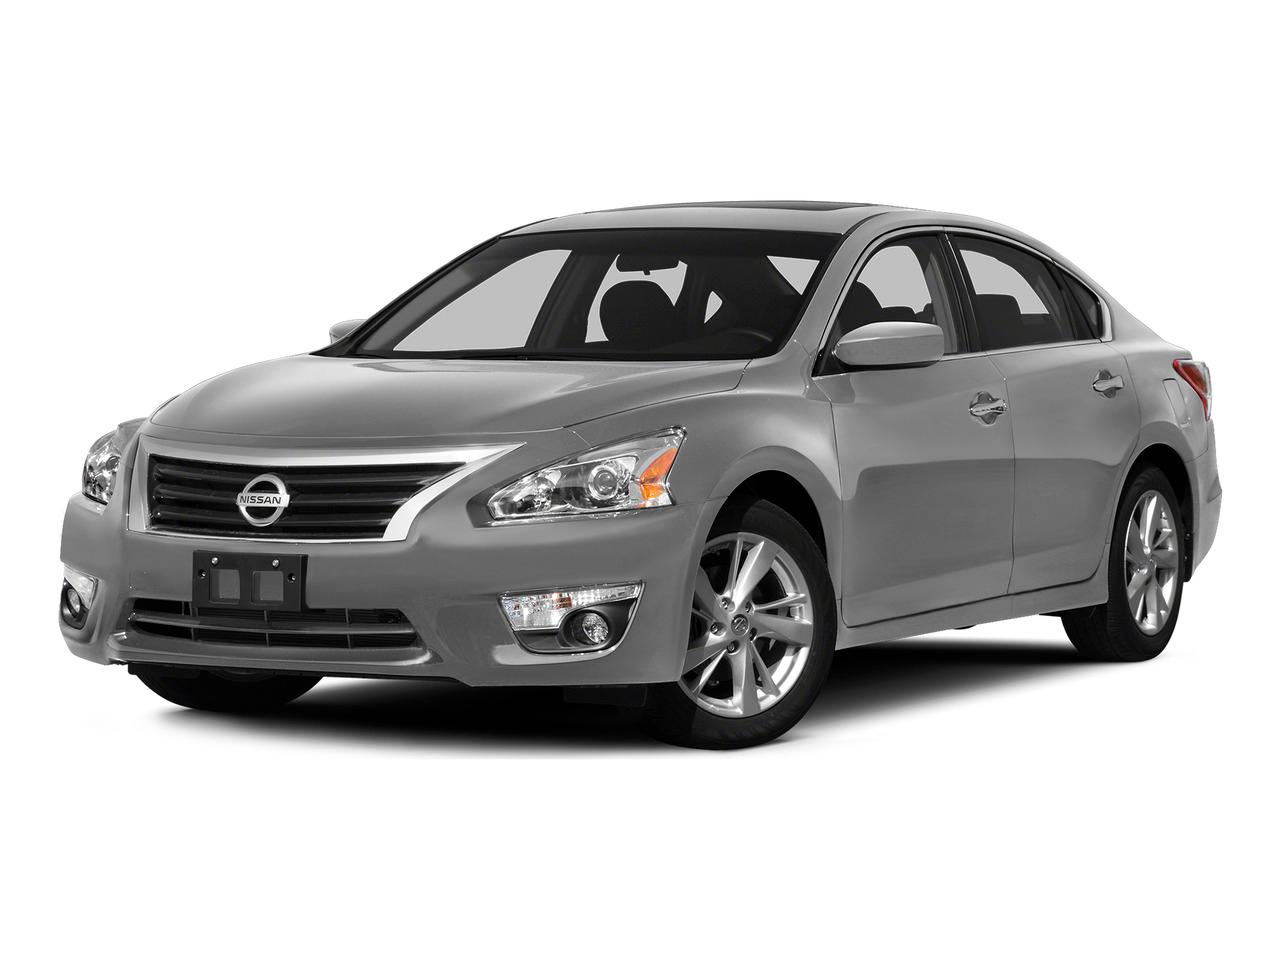 2015 Nissan Altima Vehicle Photo in Bowie, MD 20716